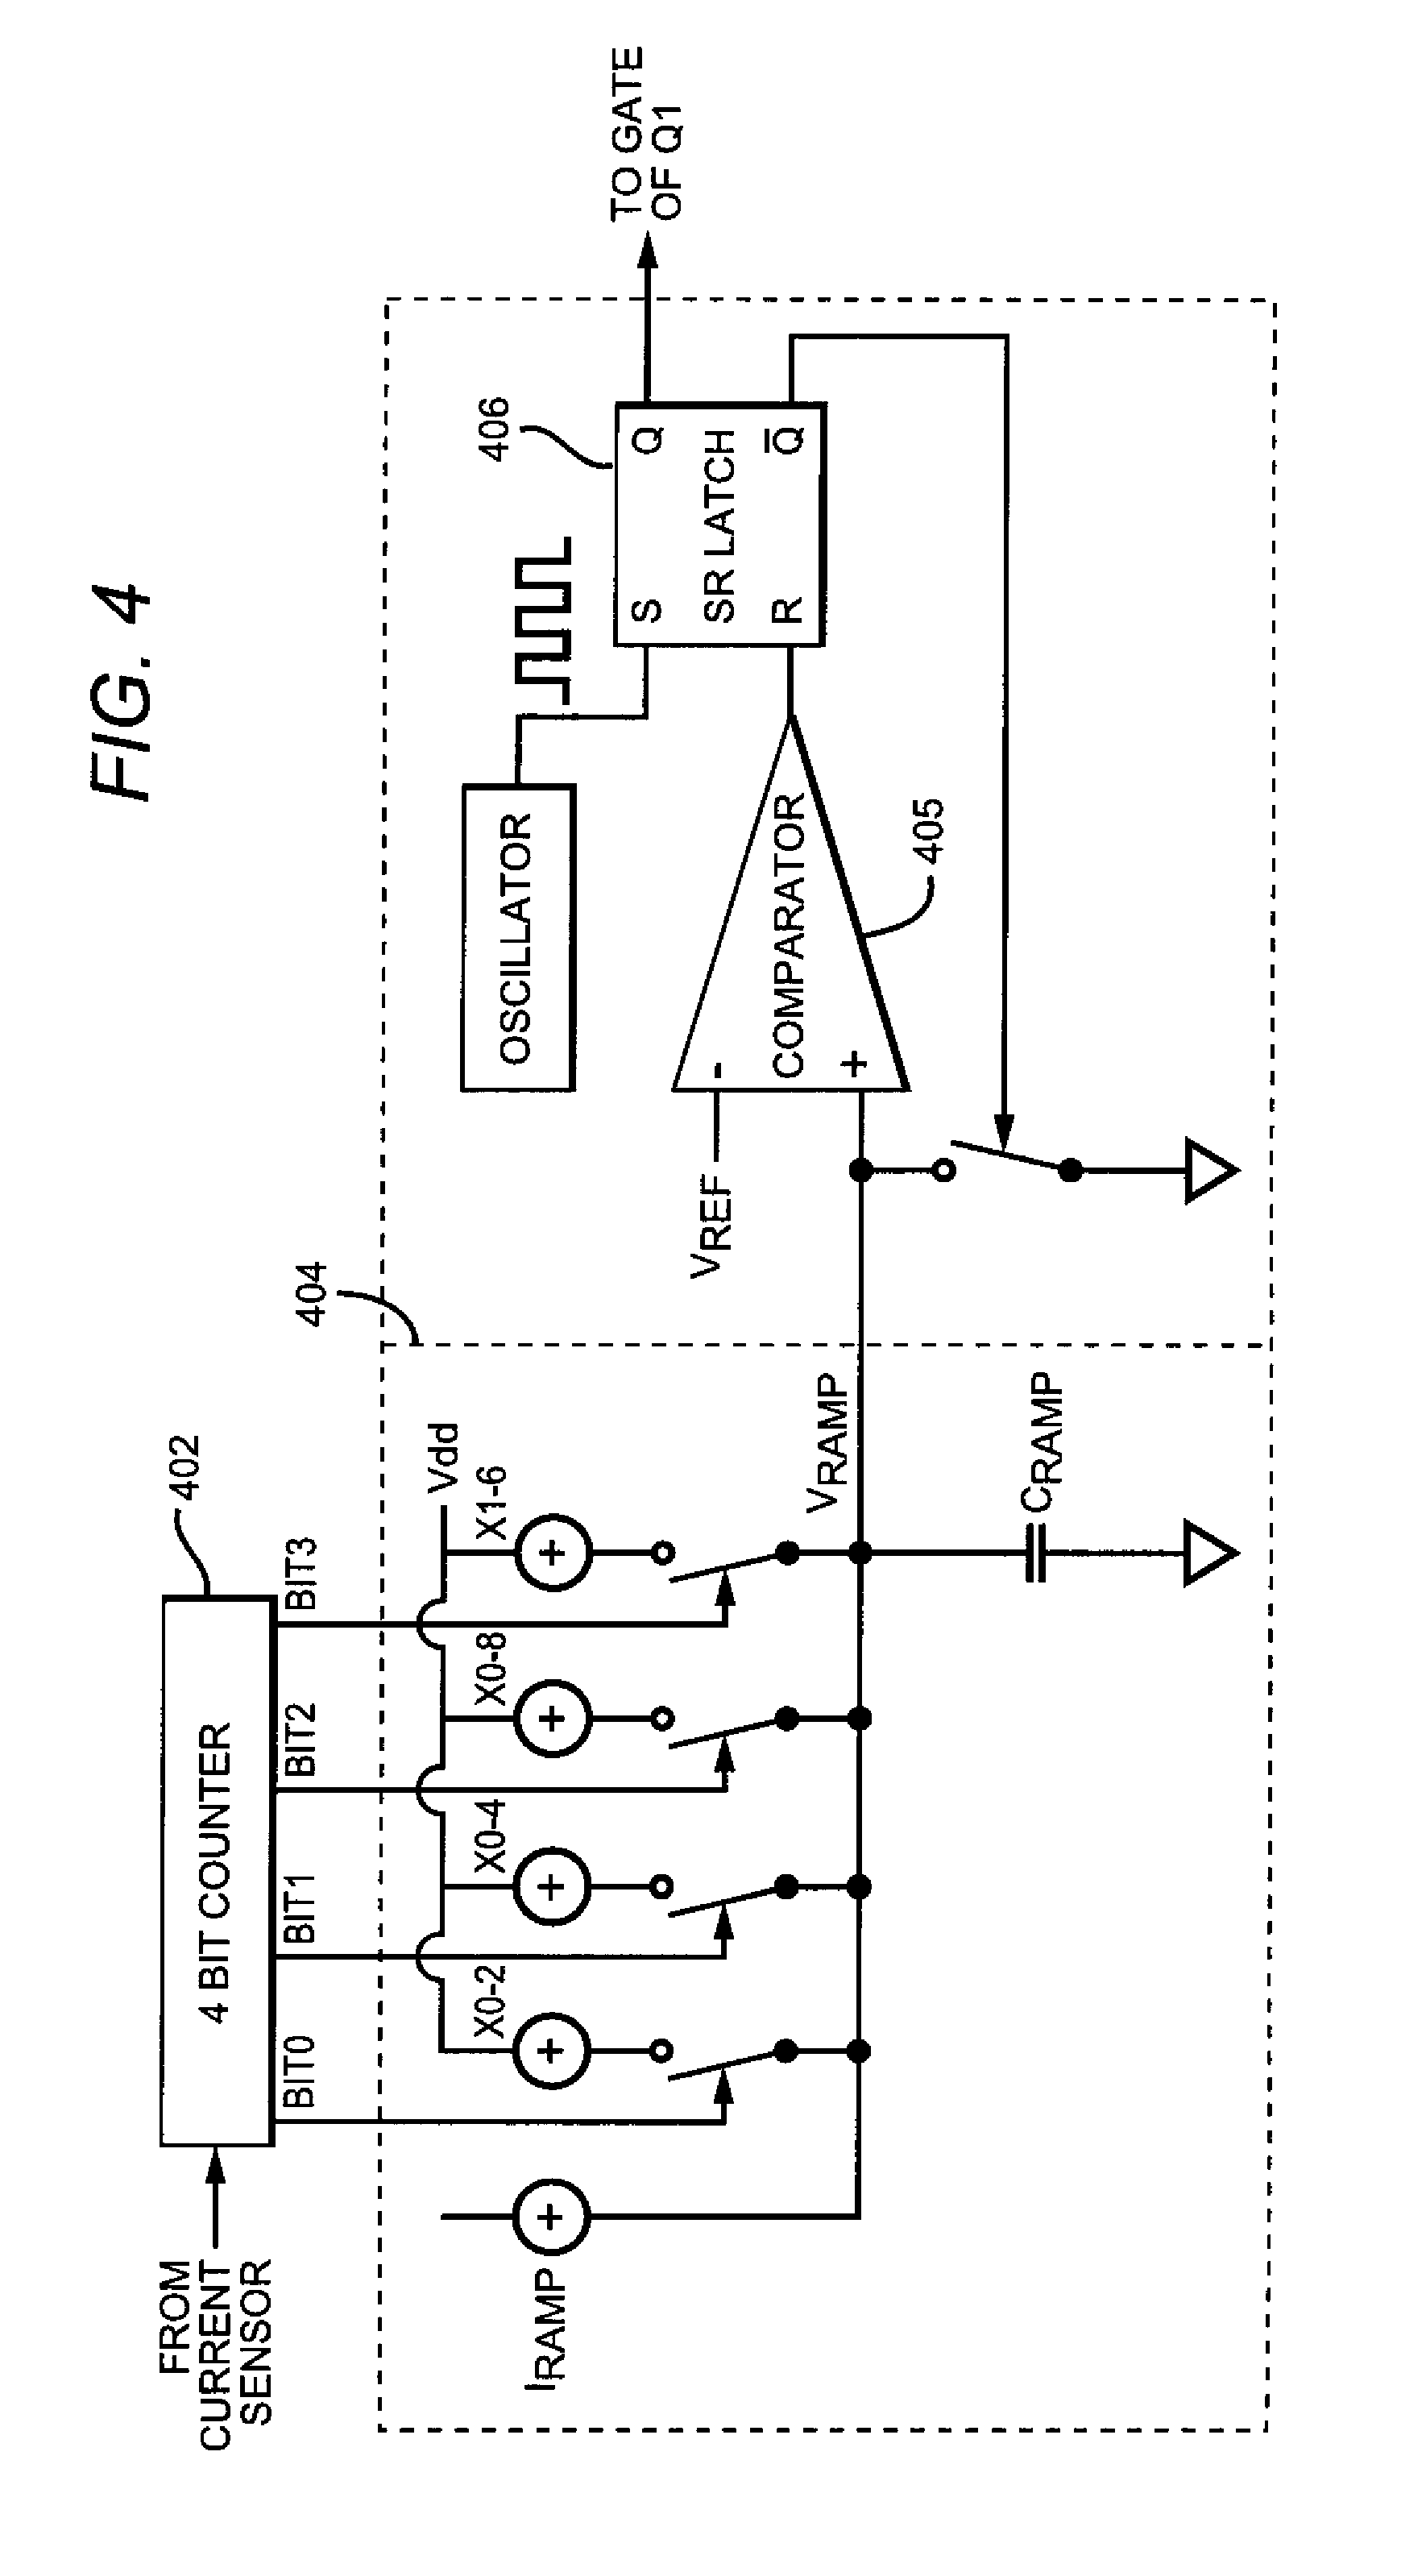 Adp1821 Step Down Dc To Converter Circuit Schematic Diagram Currentlimit For The Buck Regulator